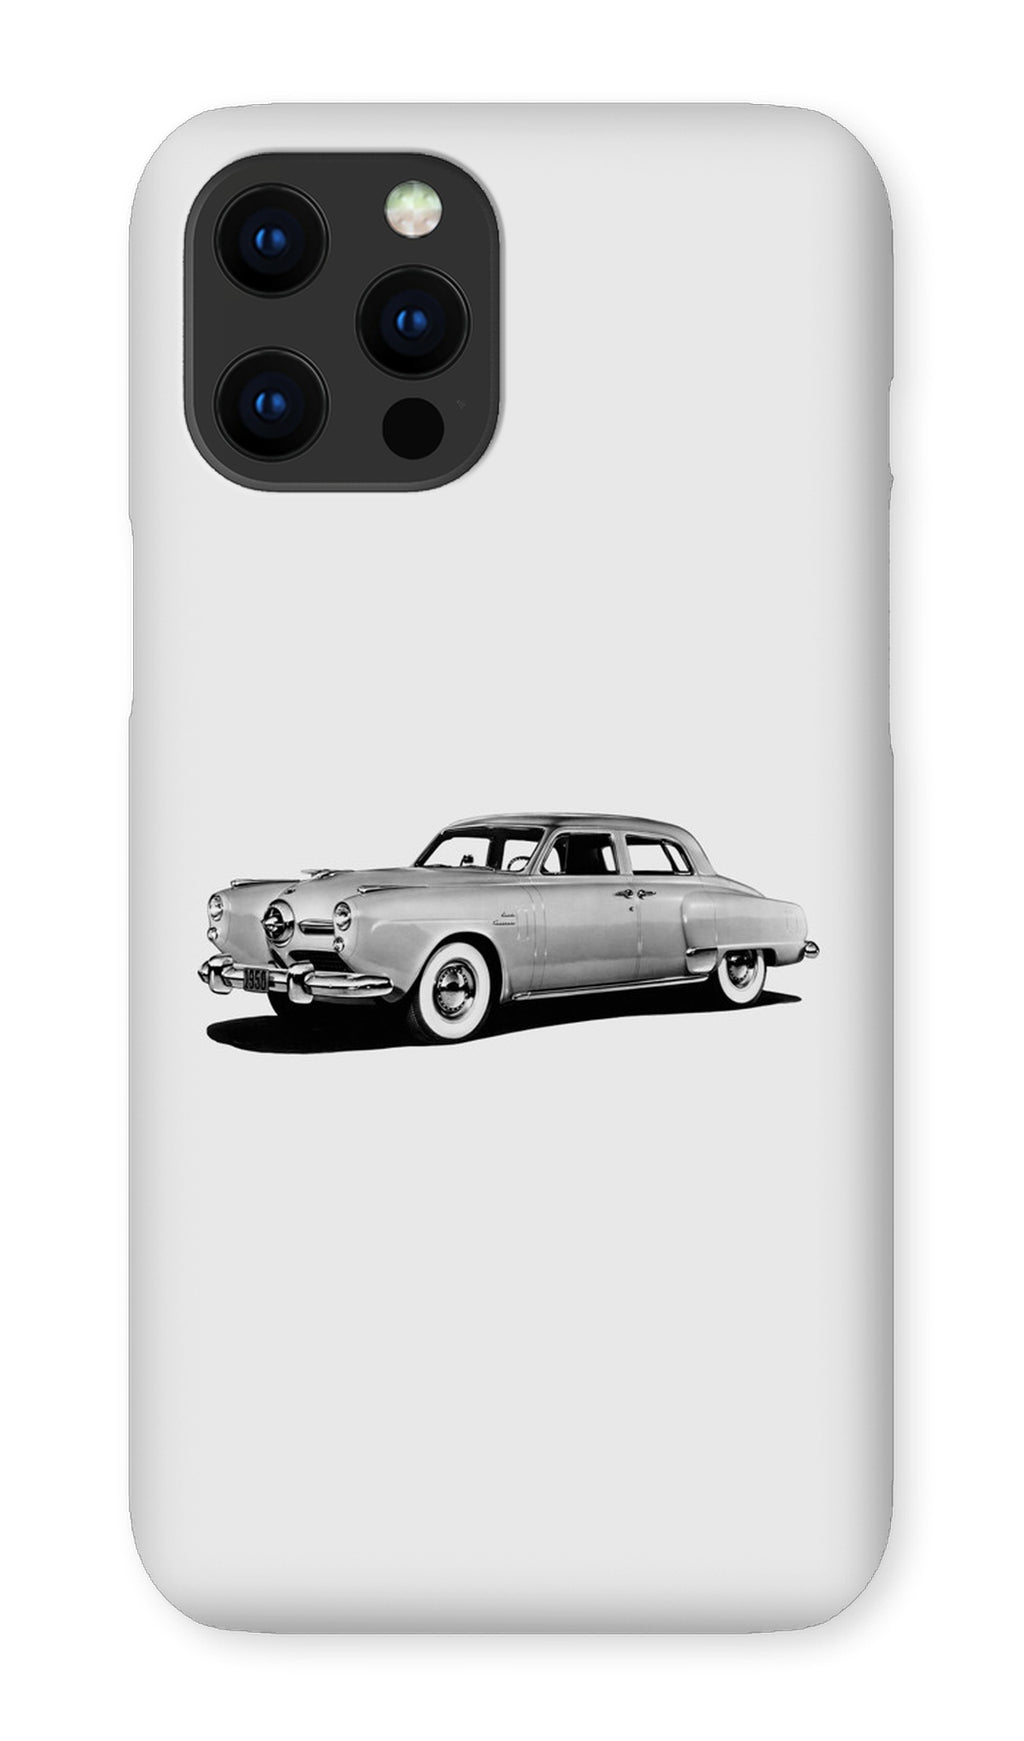 1950 Studebaker® Land Cruiser Phone Case